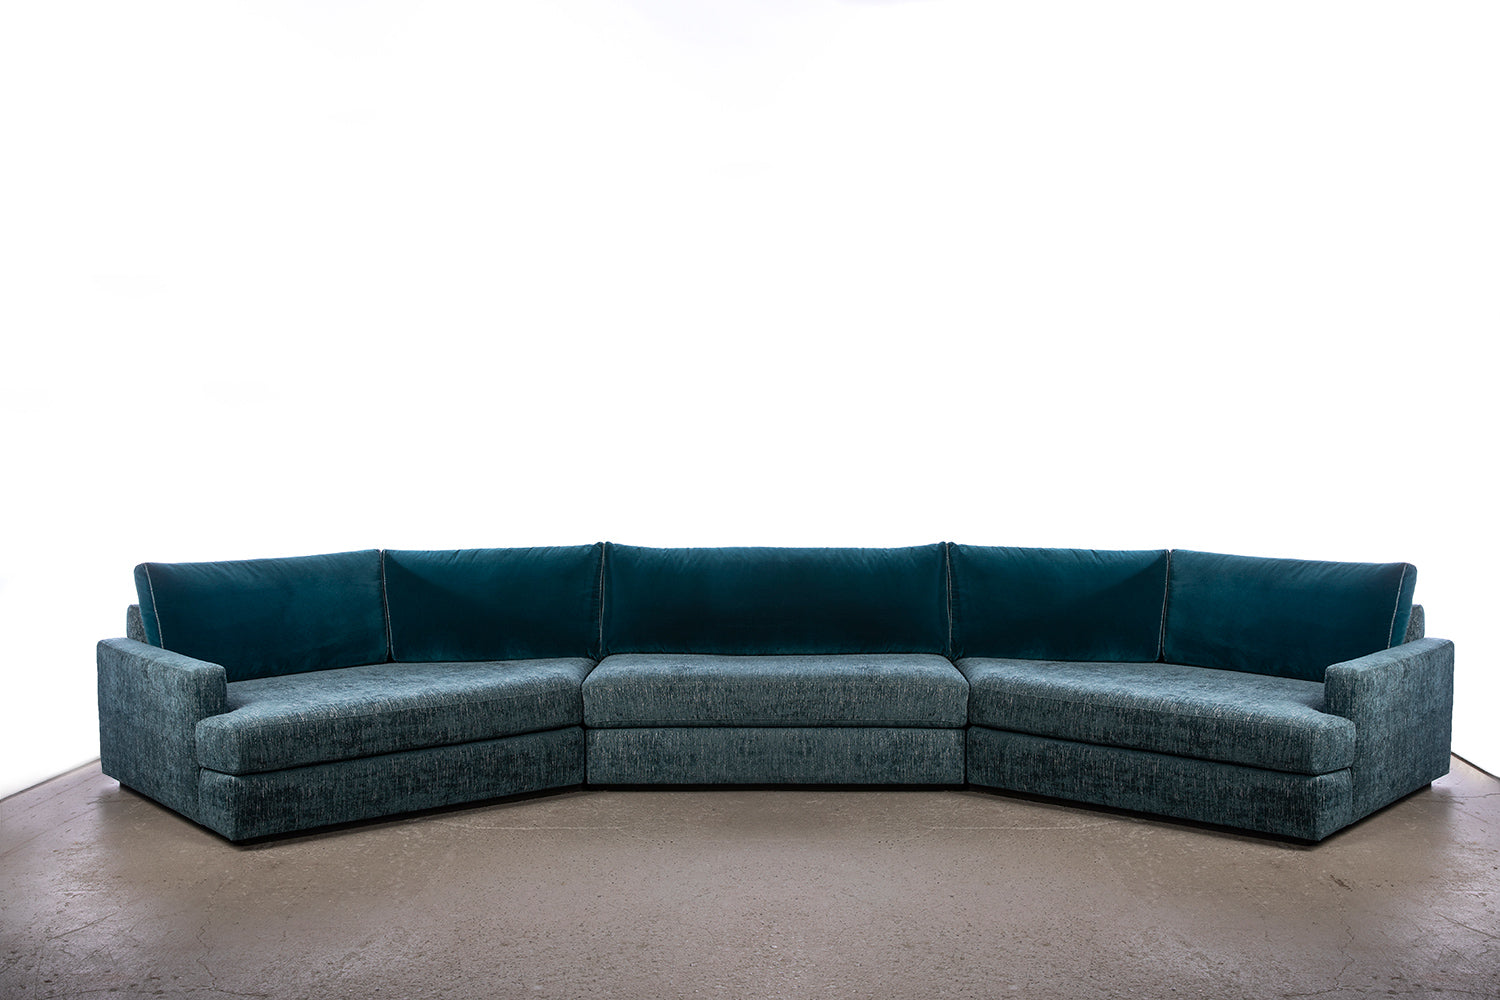 ffabb Coasty Slim - Bay modular Sectional : medium in peacock mohair